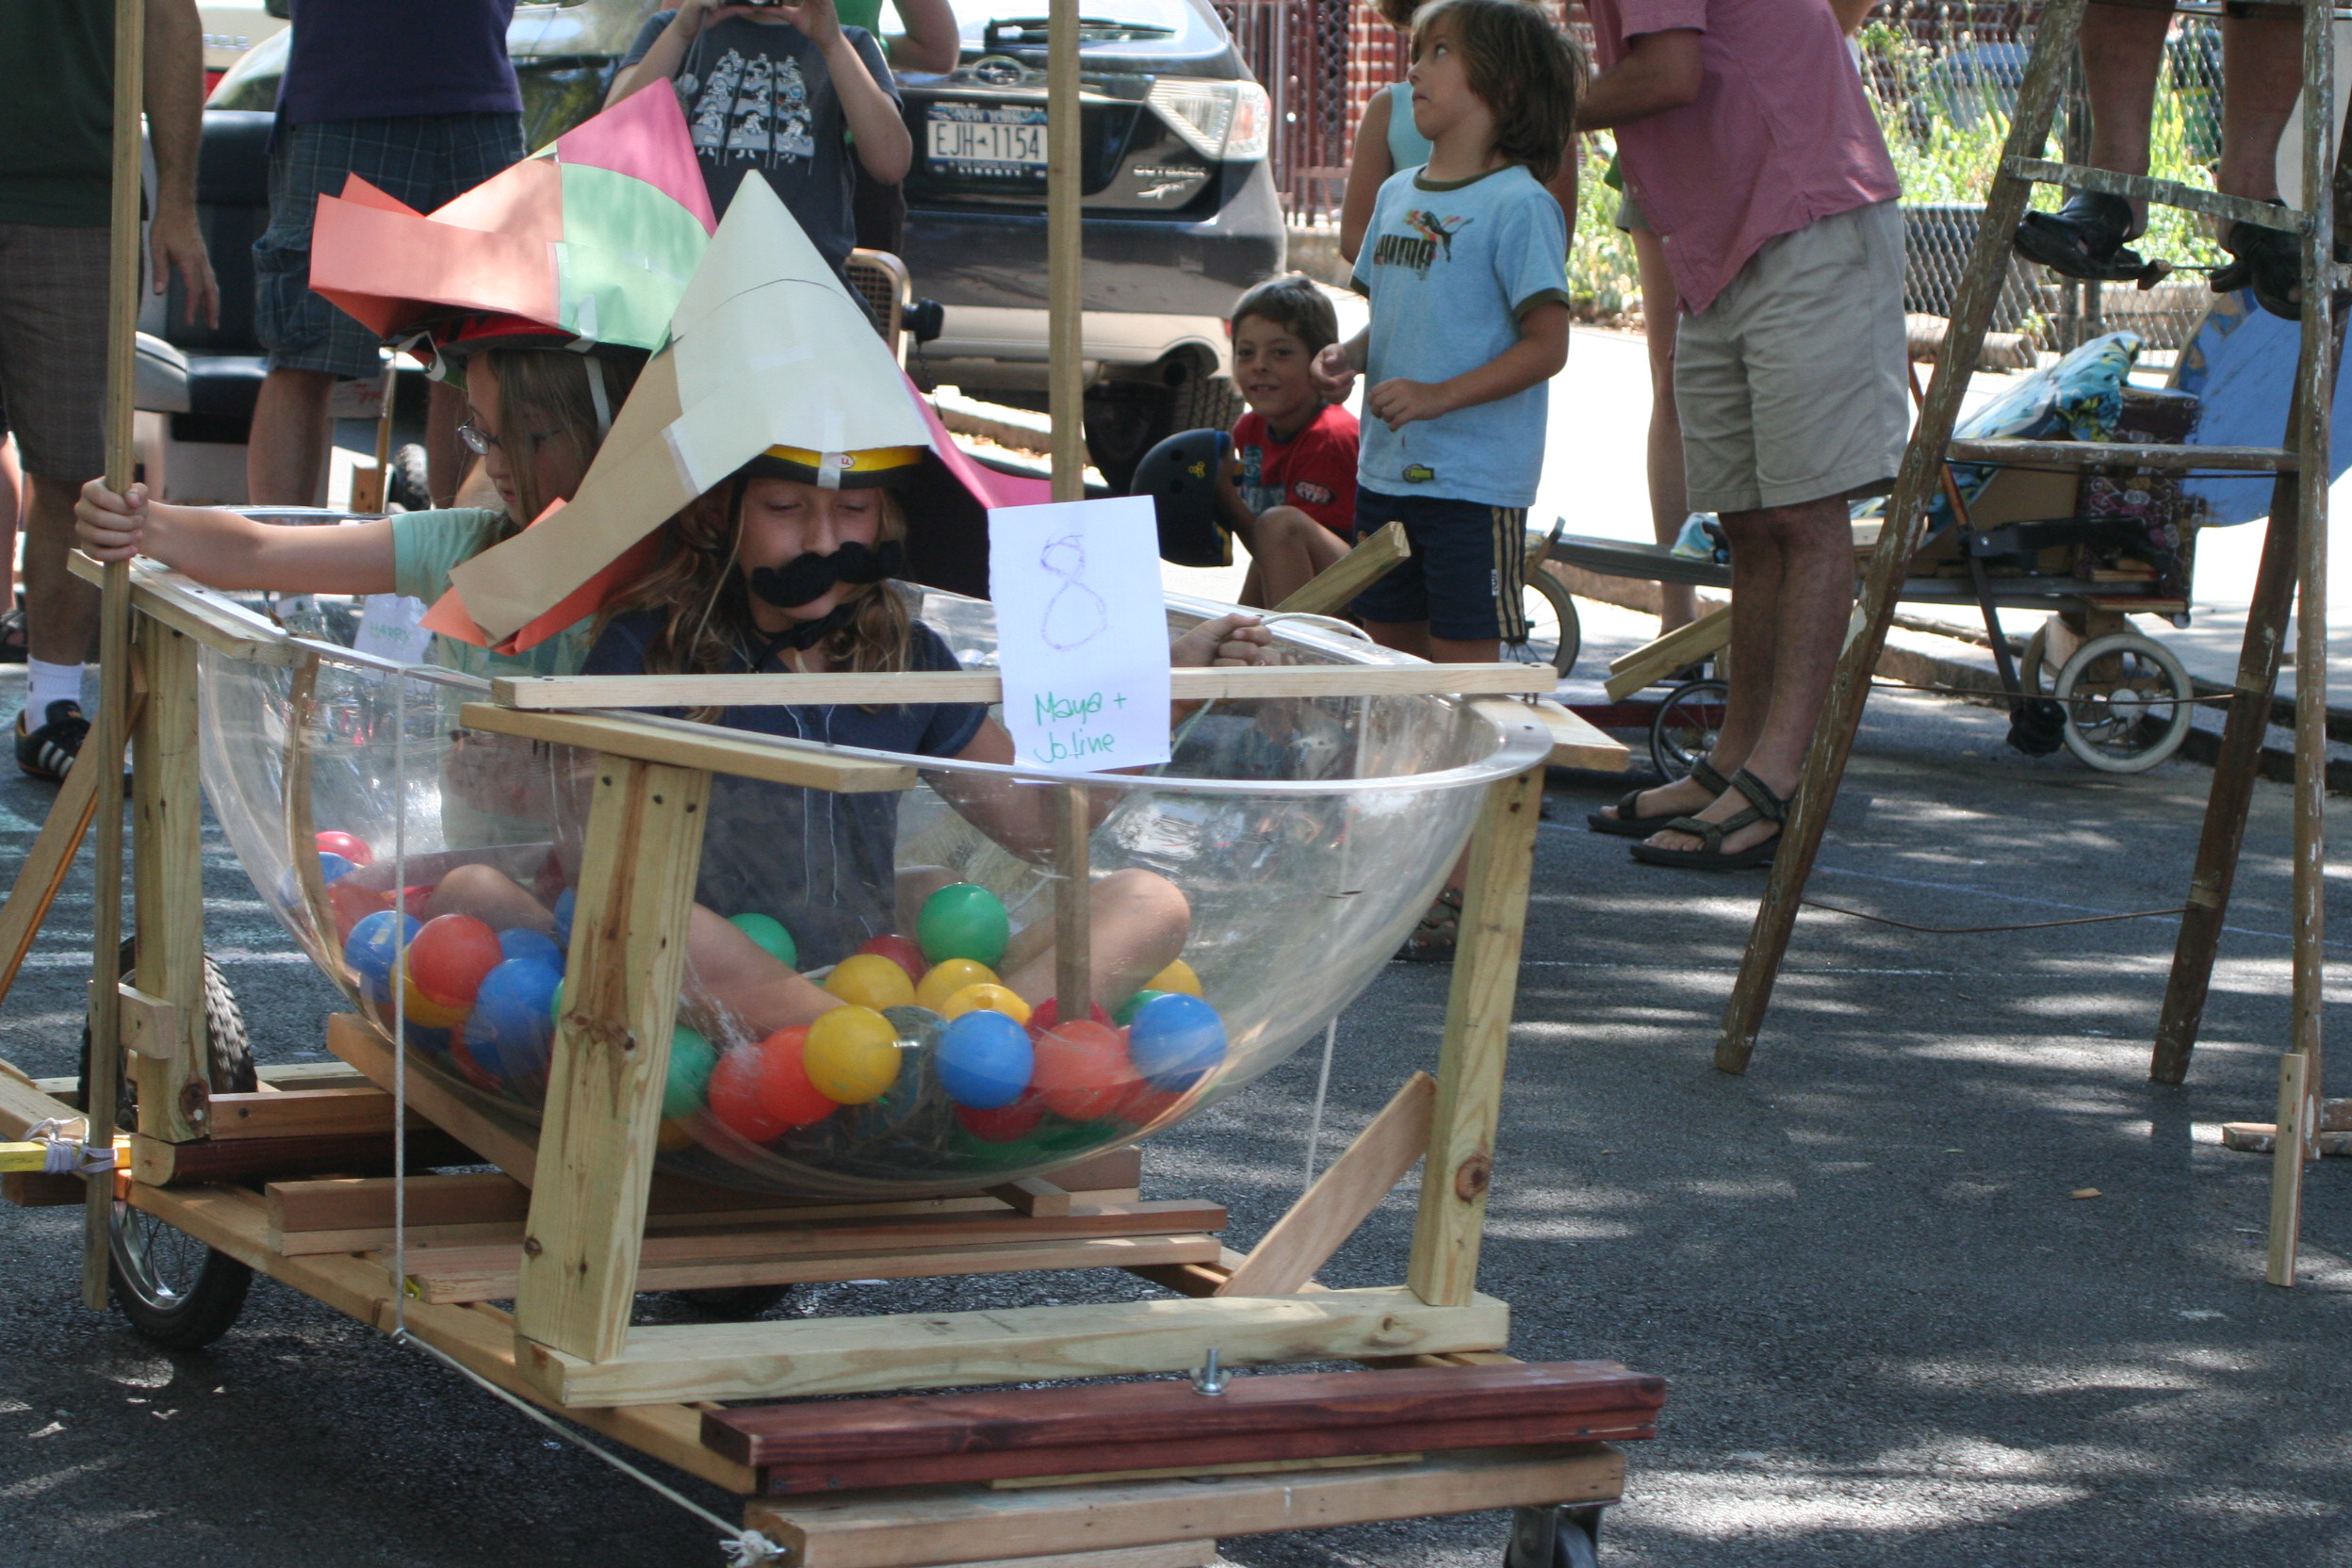 4th annual Soap Box DERBY – OPEN SOURCE GALLERY